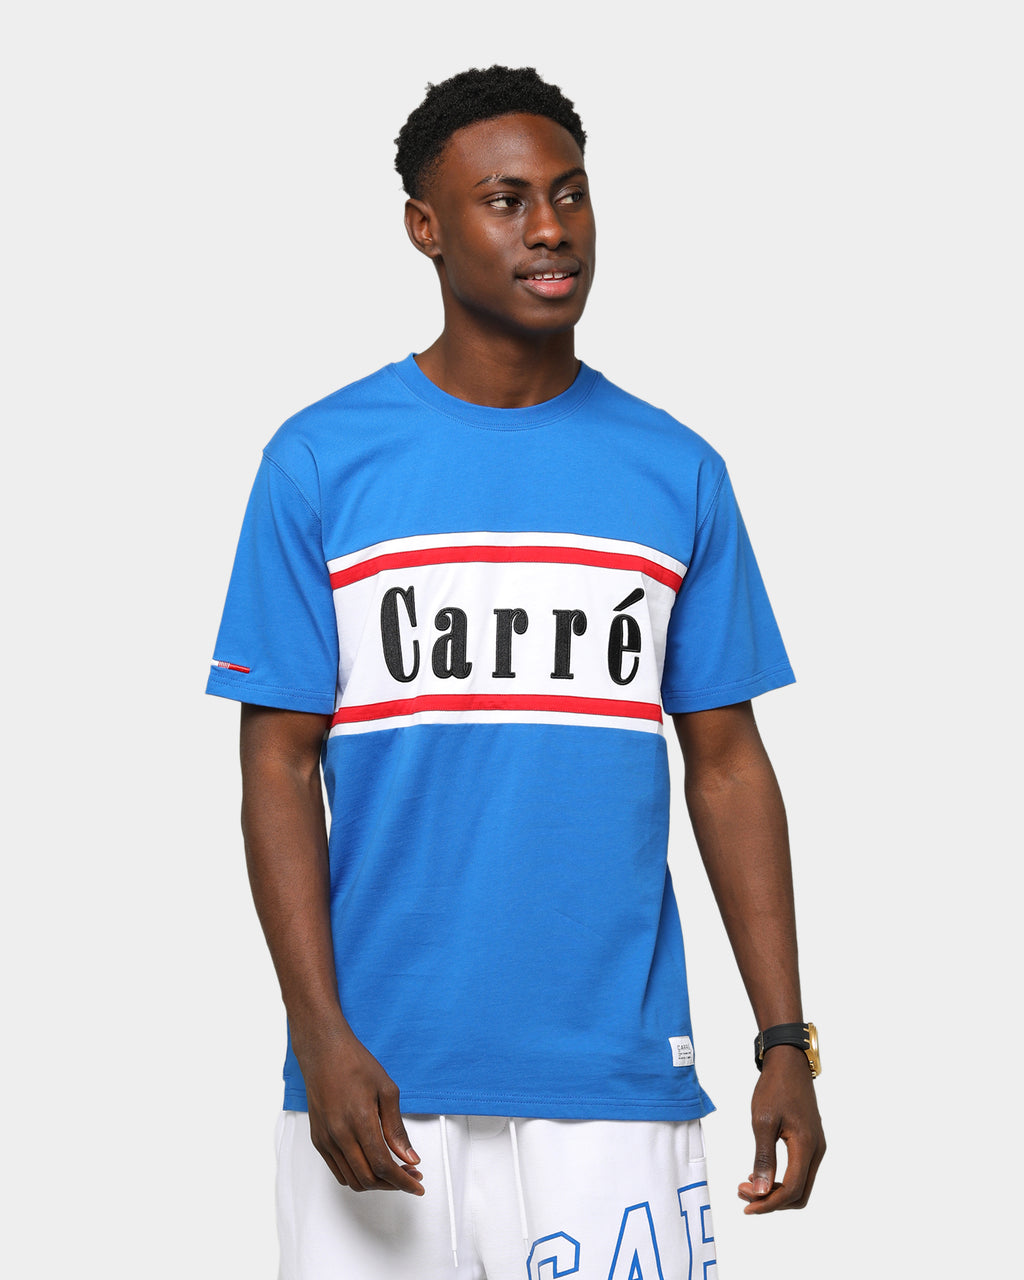 Carré Hardila Plage Classique Short Sleeve T-Shirt Blue/White